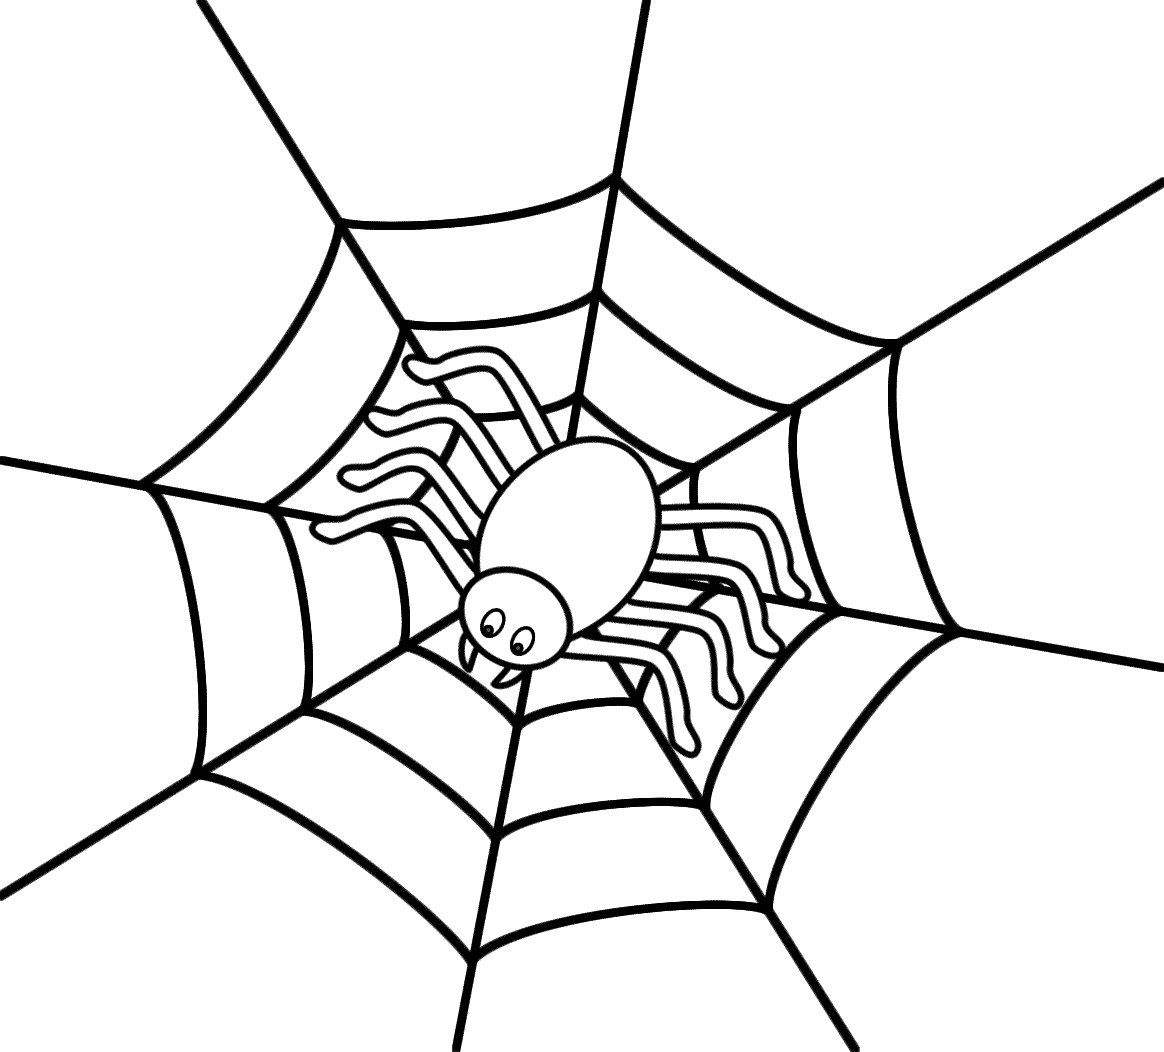 Free Spider Web Graphic, Download Free Clip Art, Free Clip Art On - Spider Web Stencil Free Printable